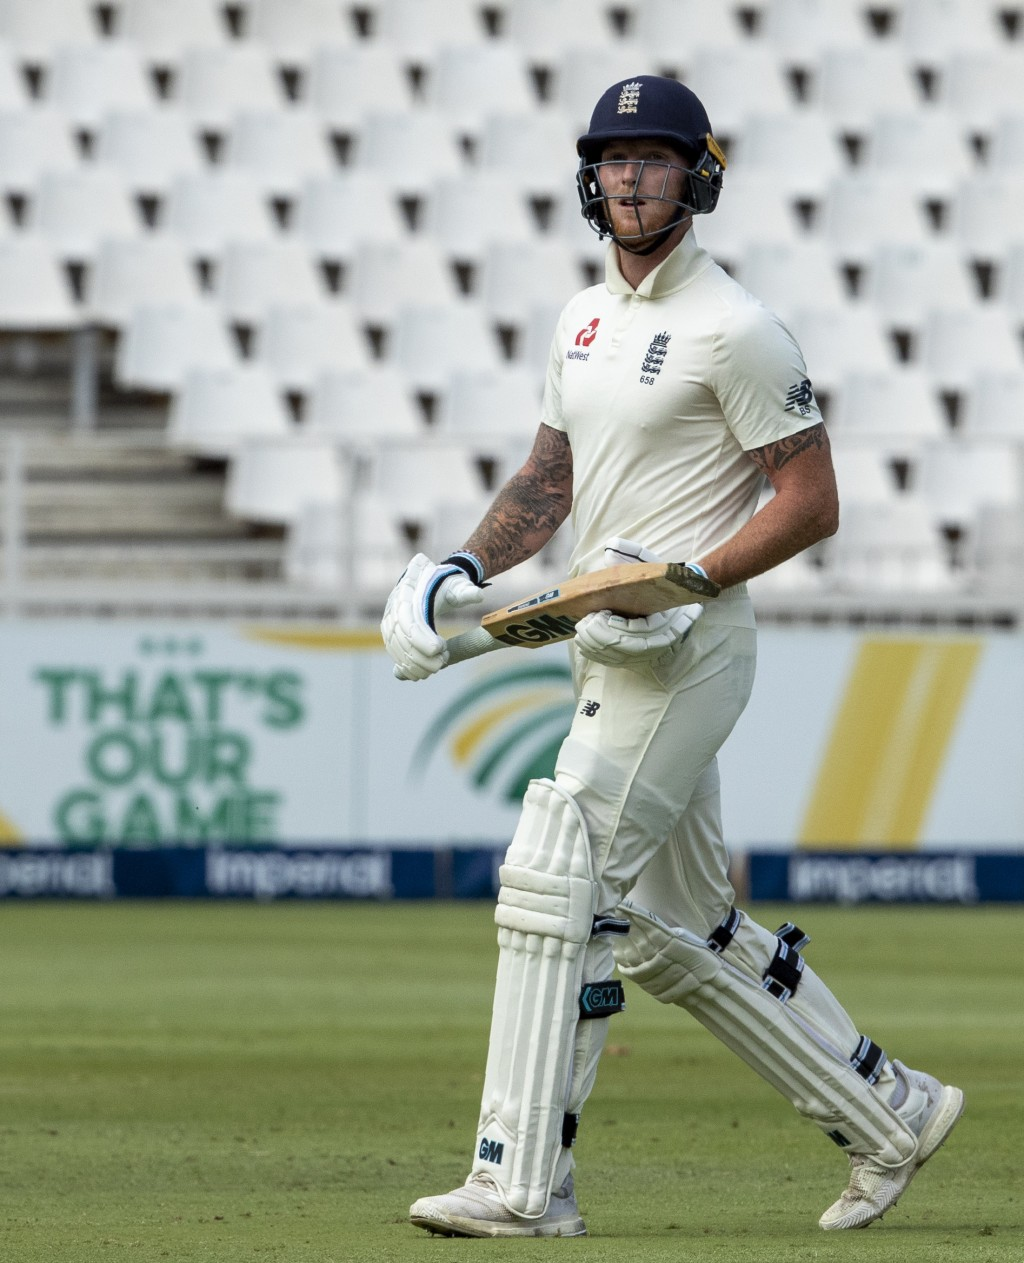 England's batsman Ben Stokes leaves the field after being dismissed by England's batsman Ben Stokes for 2 runs on day one of the fourth cricket test m...